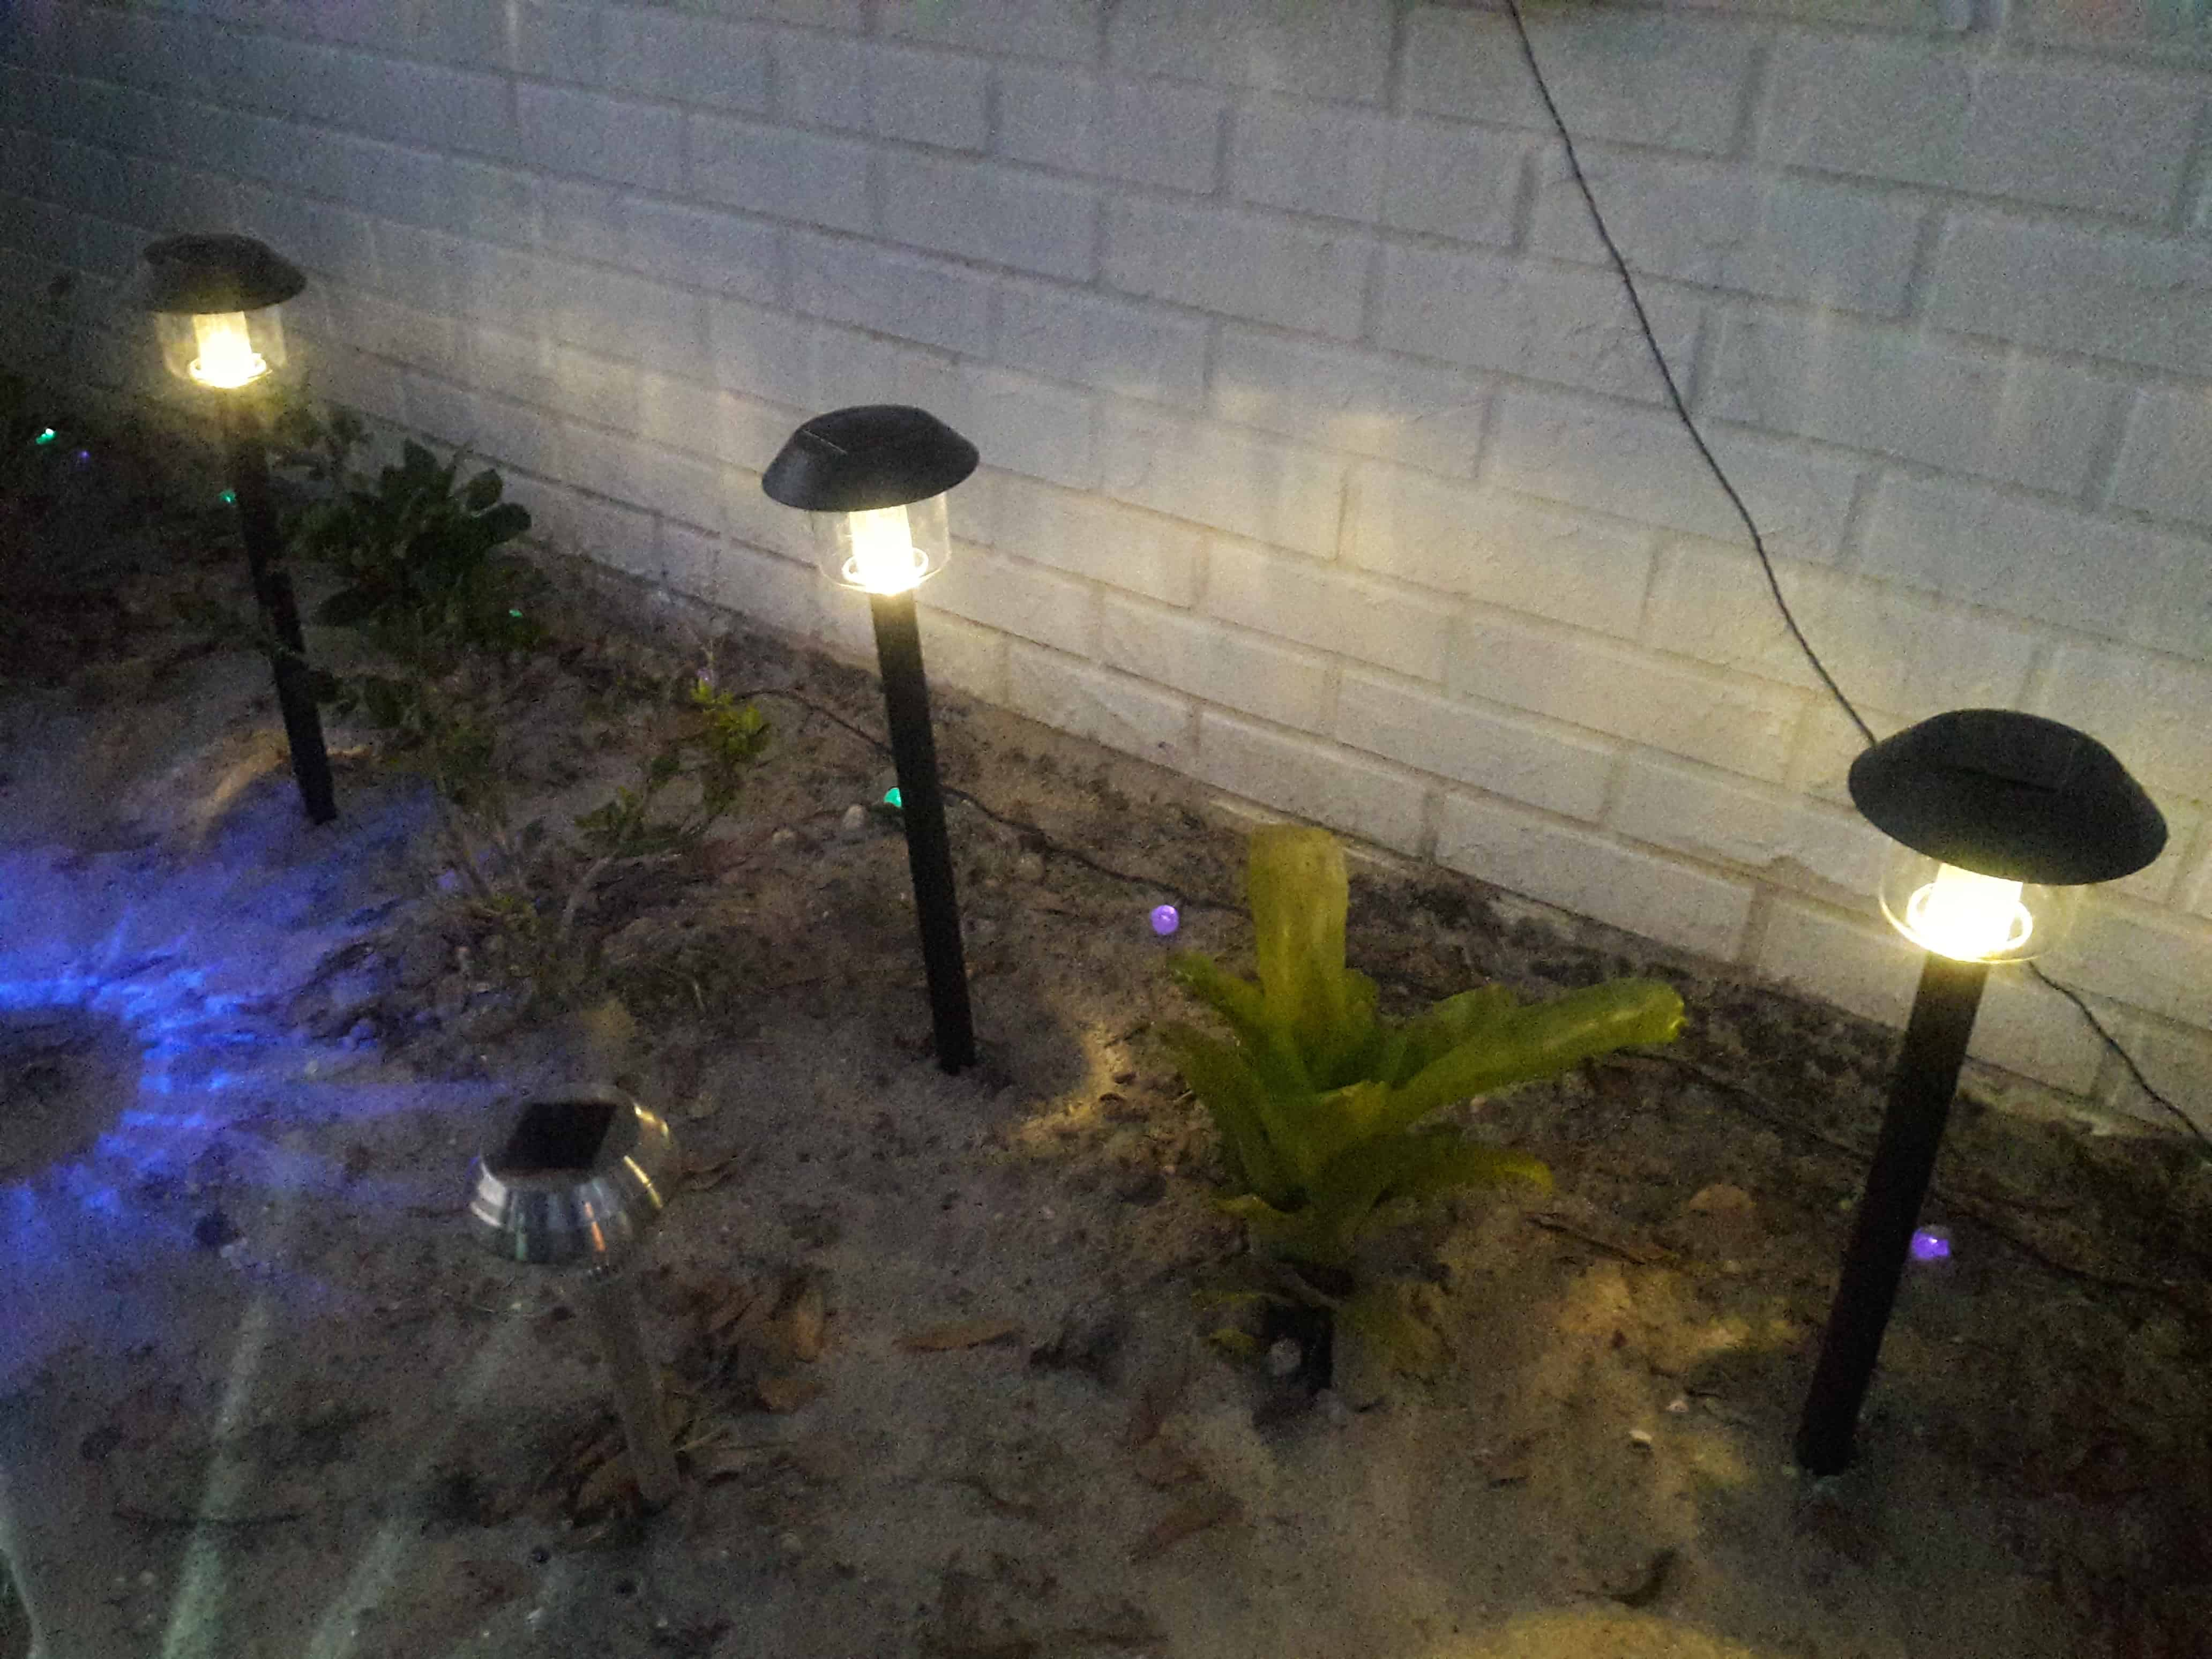 The Sogrand Christmas Solar Lights With 15 Lumen, Are Really Impressive In  My Front Garden. They Have 3 Pieces Of Pole, Which Makes Them Higher Than  Other ...